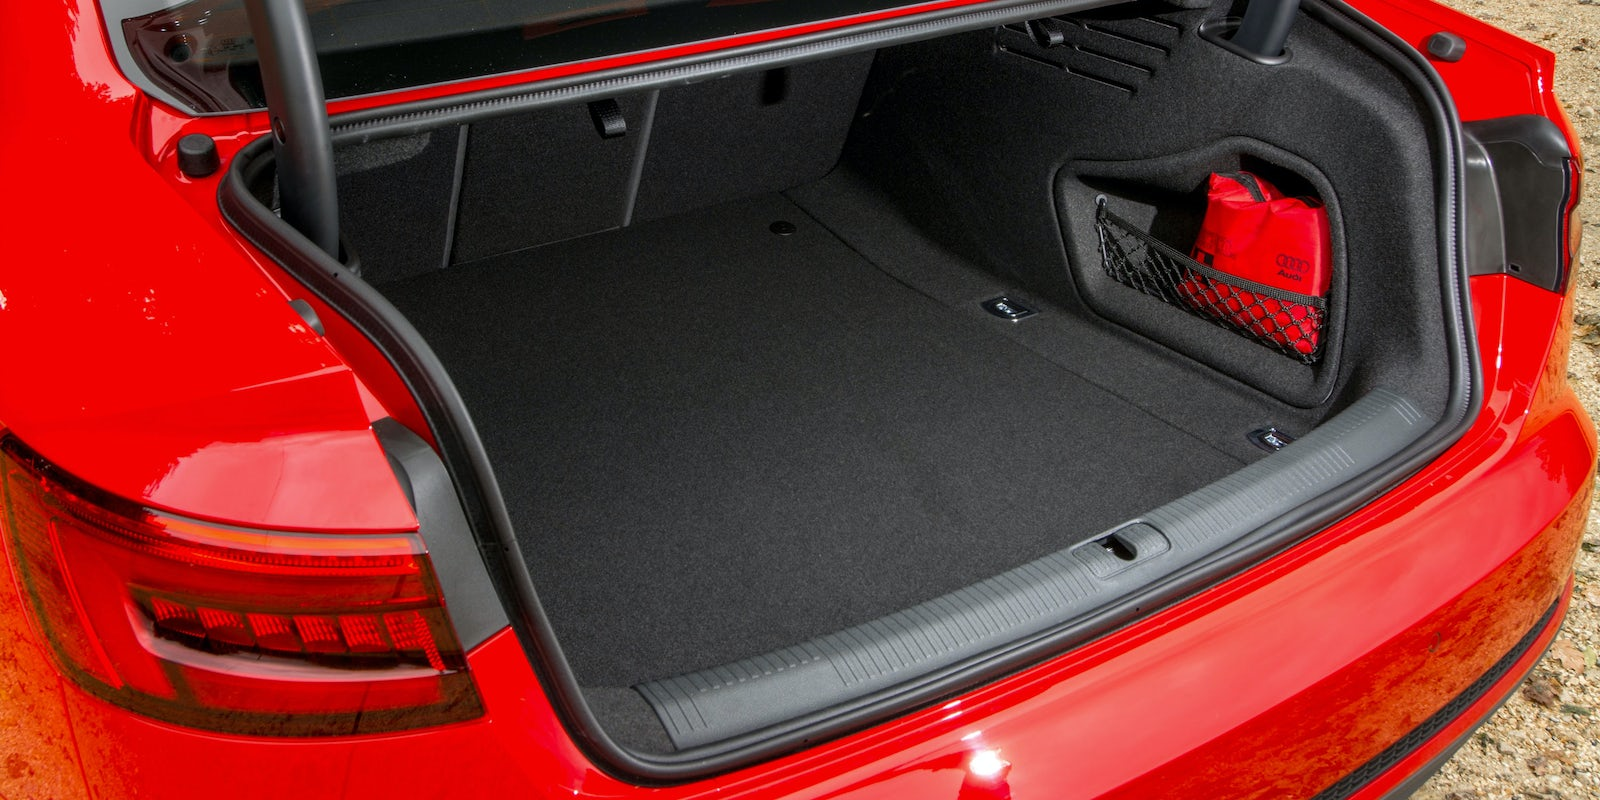 Audi A4 Boot Space Dimensions Carwow